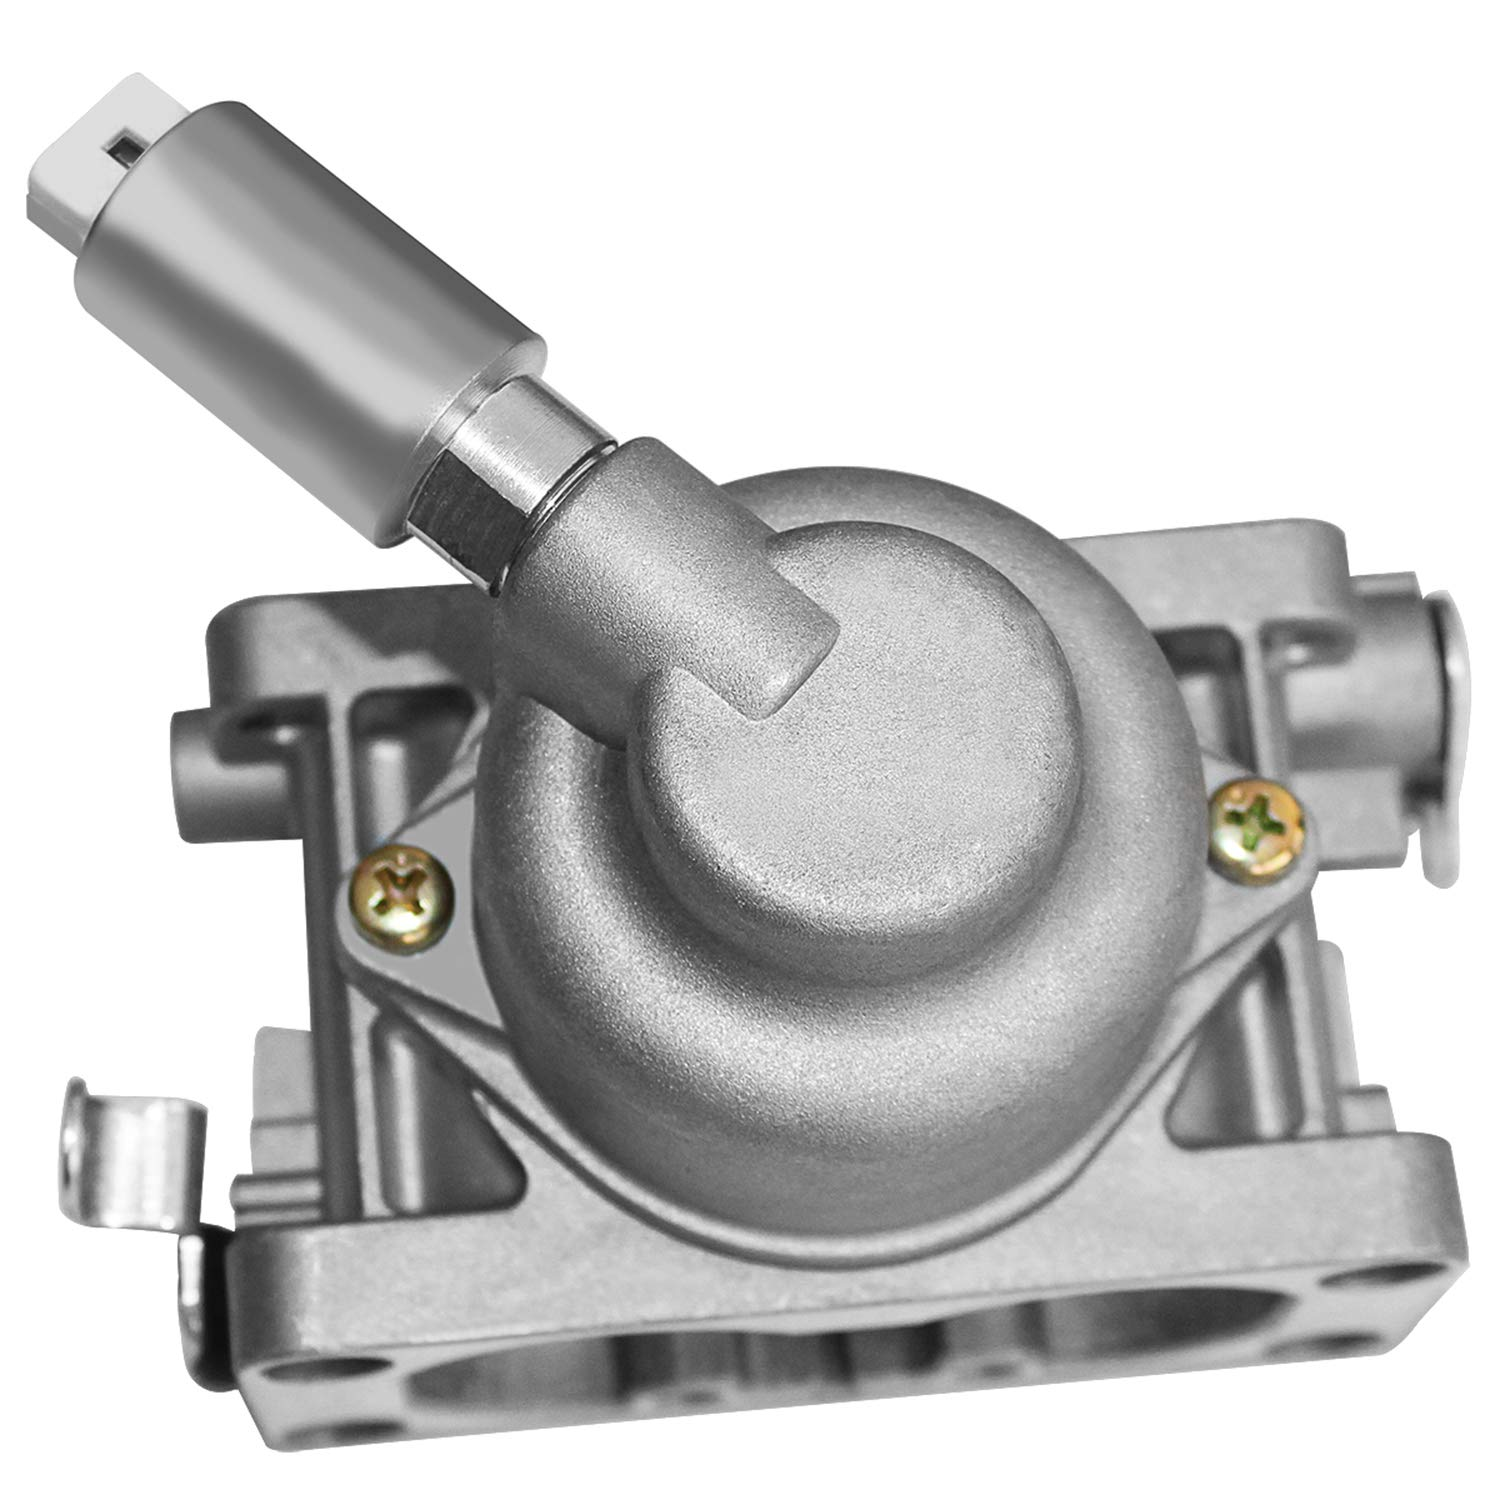 Replace 20hp 21hp 22HP 23HP 24HP 25hp Carburetor for Briggs Stratton Carburetors V-Twin Engines with Gaskets